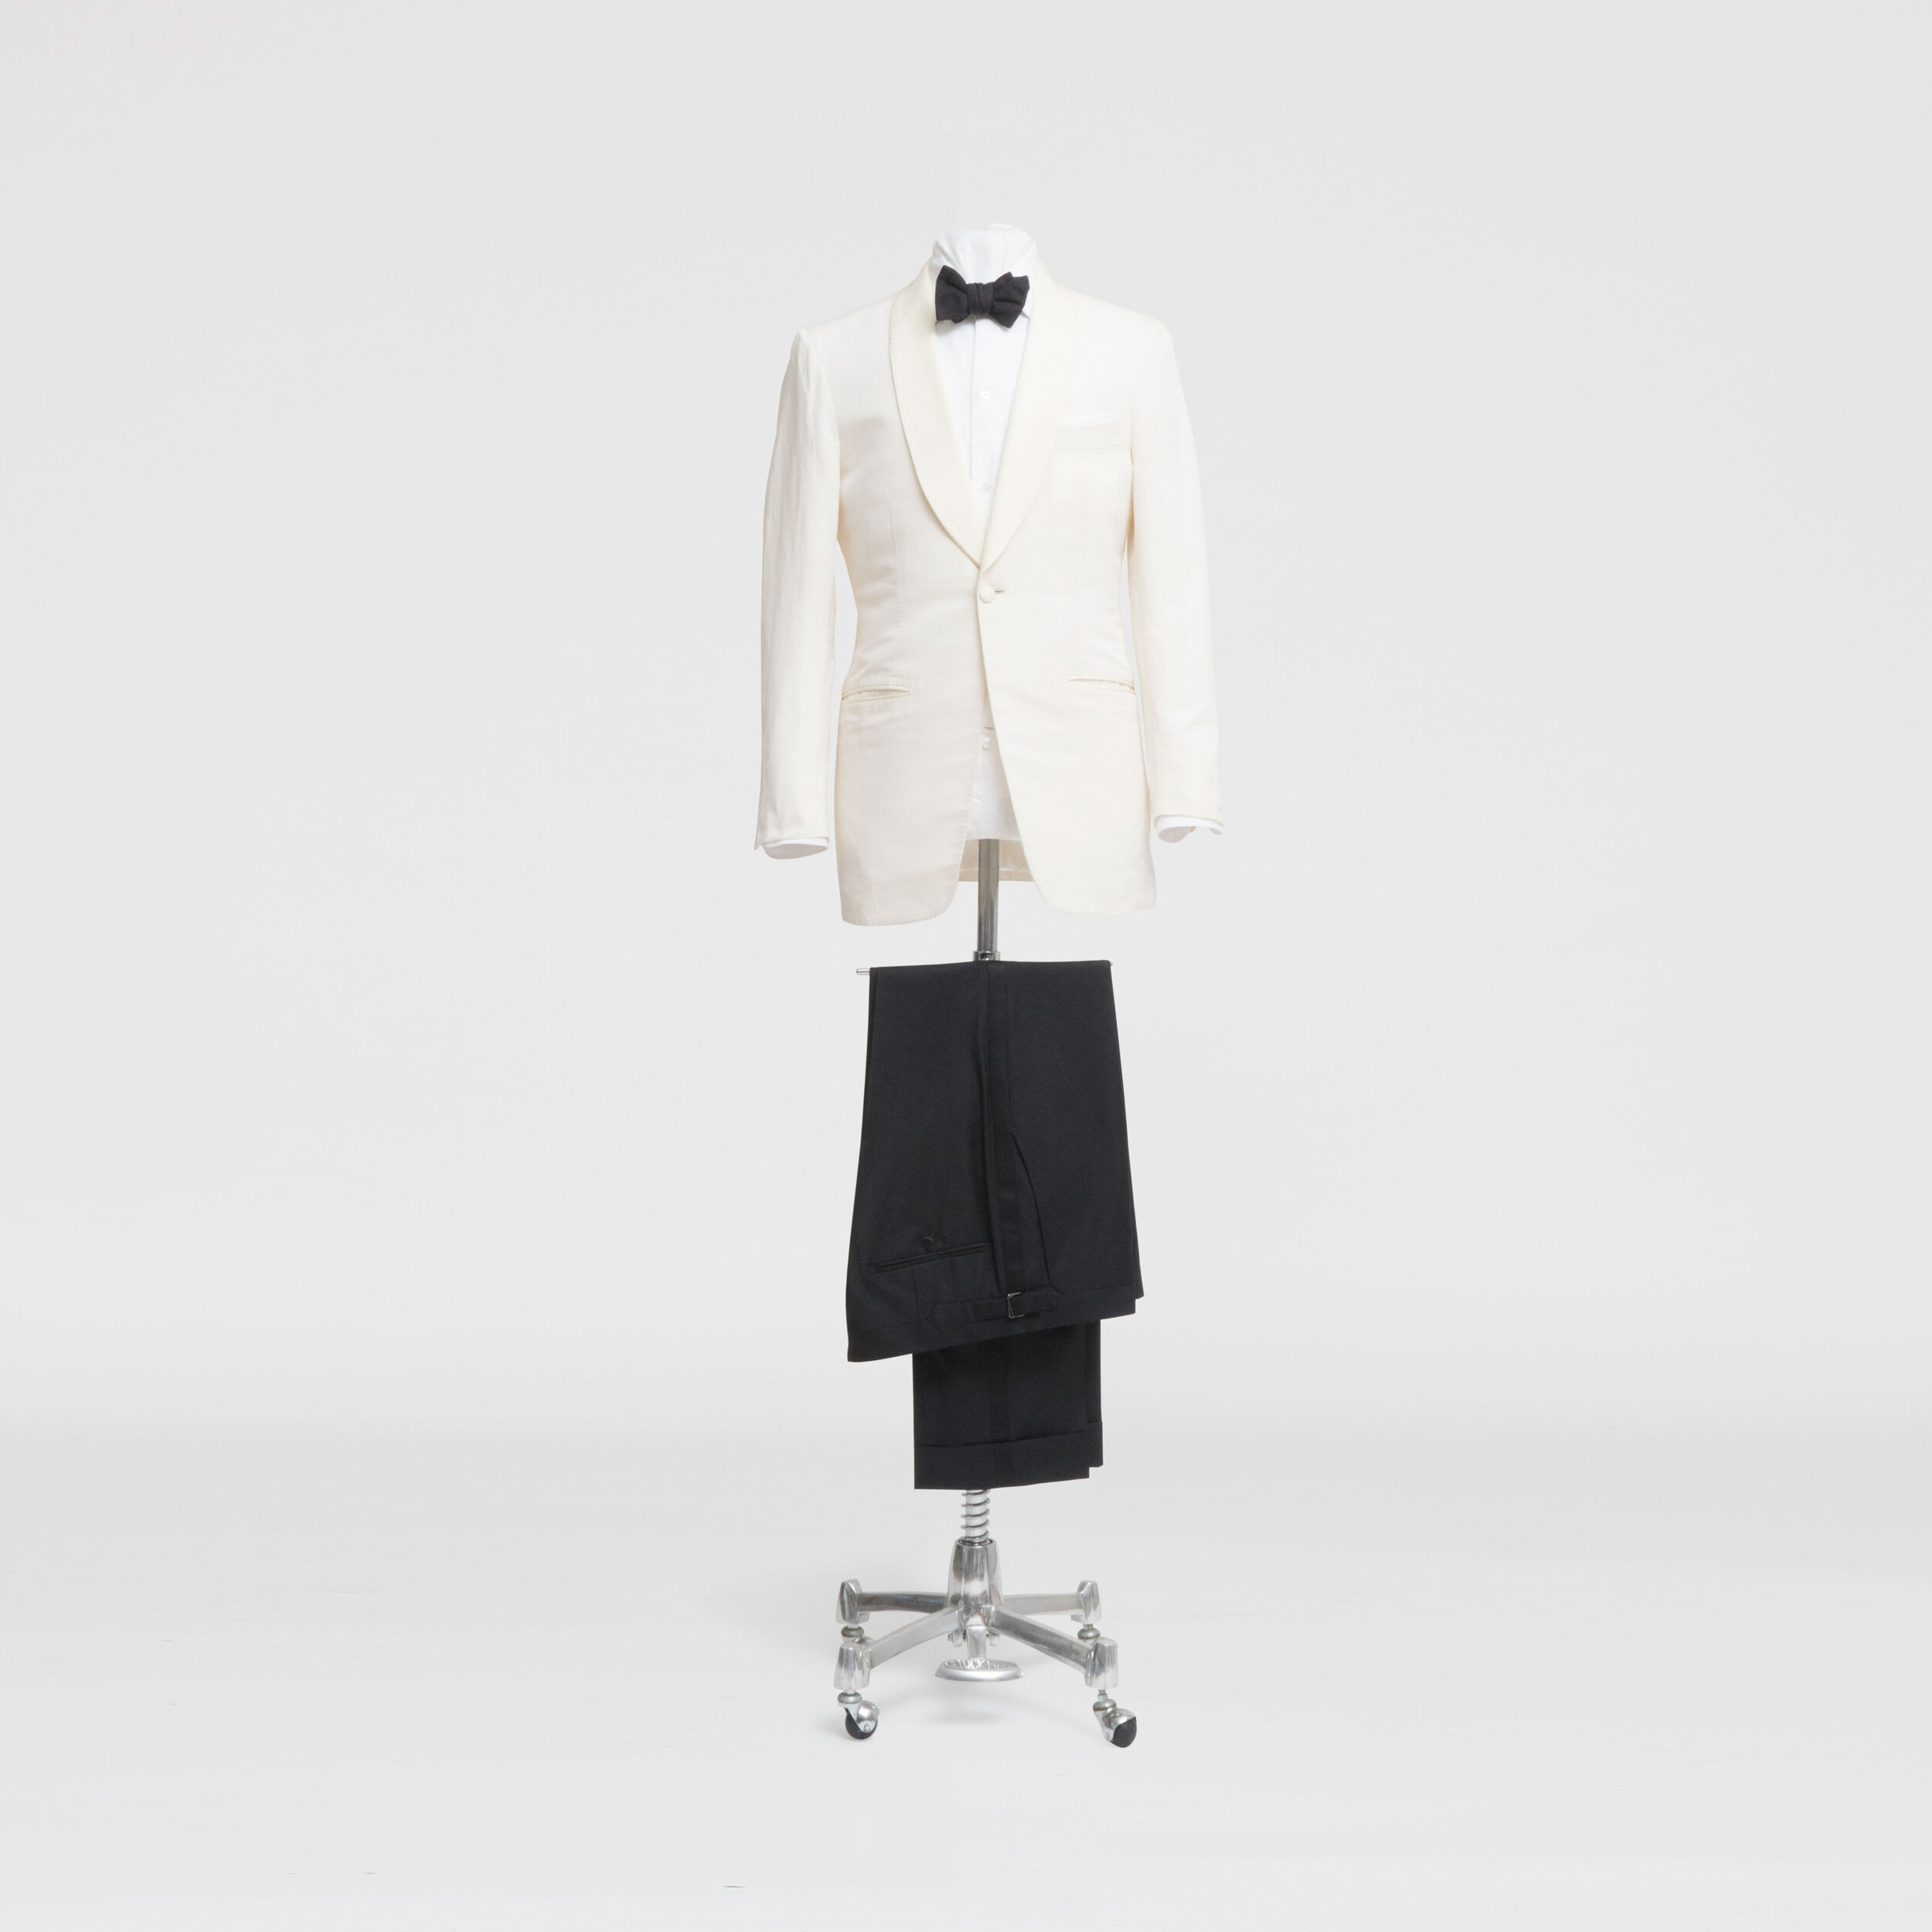 Contemporary weddings - Think your traditional wedding tuxedo, but with a slight modern twist. A separate jacket and trouser is a great way to add a little more interest to your look.